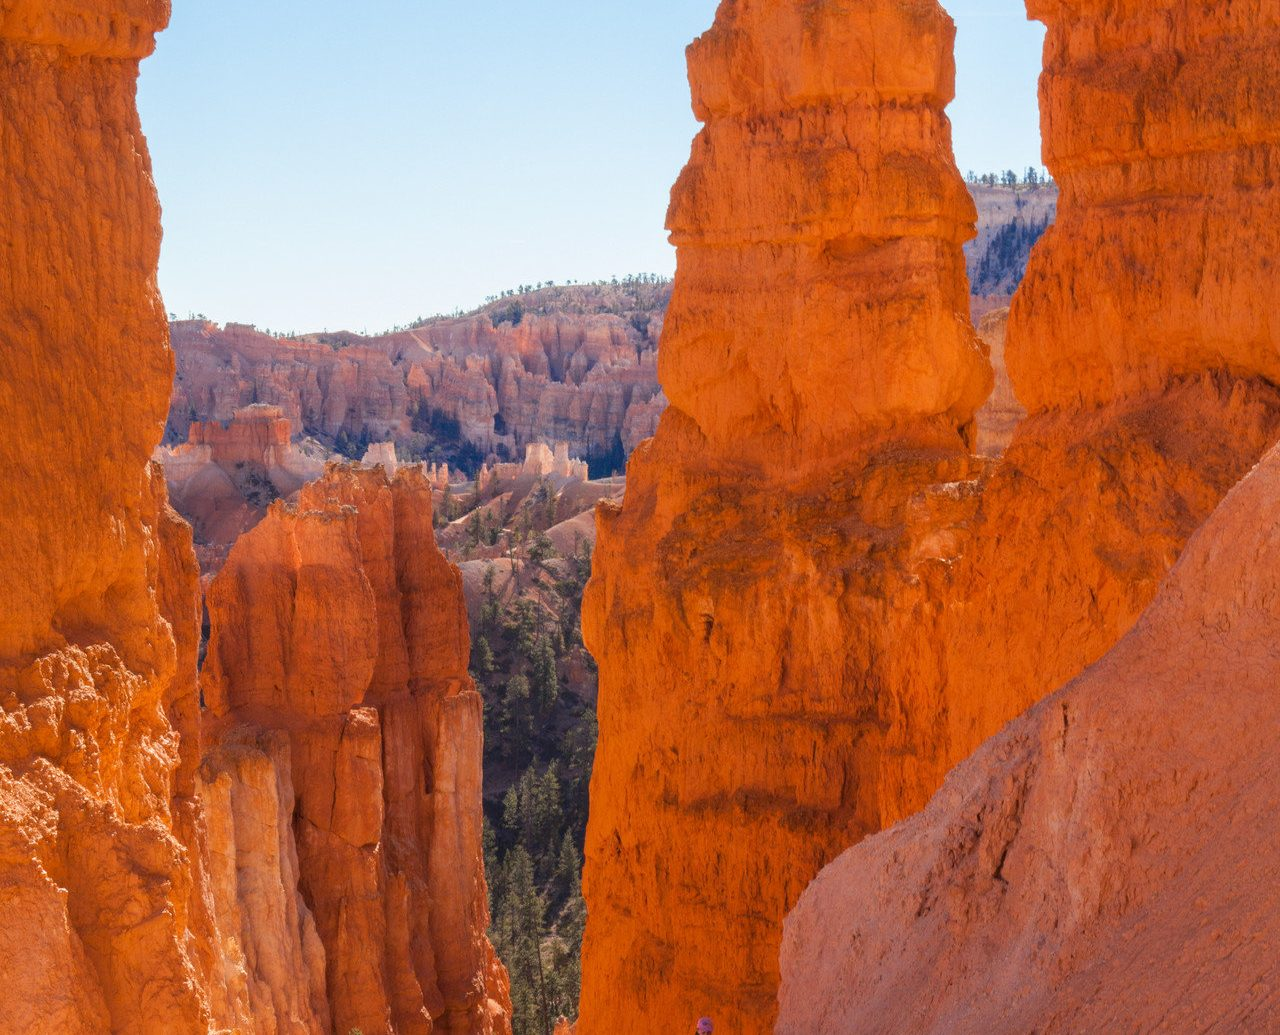 National Parks Outdoors + Adventure Trip Ideas valley Nature canyon outdoor geographical feature landform rock butte wadi badlands geology arch landscape formation plateau national park